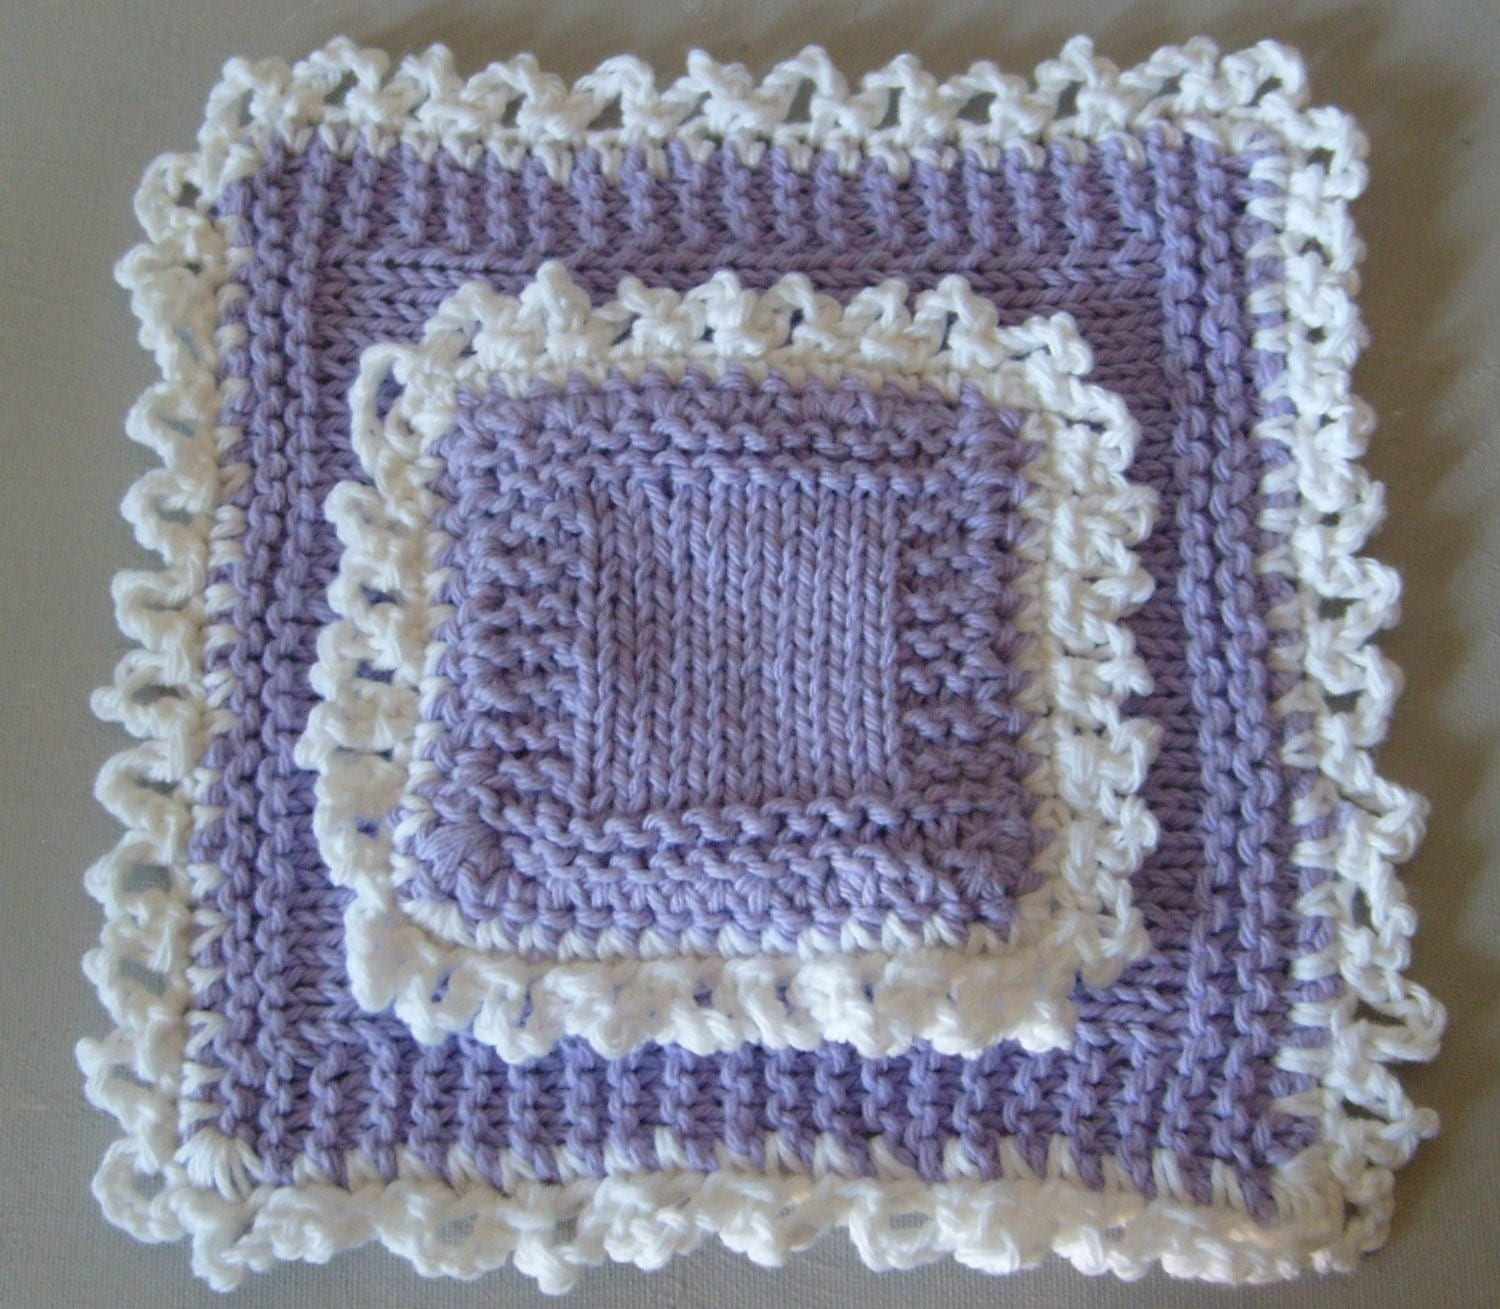 Pretty Hand Knit Deluxe Sponge And Washcloth Set - In Lavender And White/Lace Edge / FREE WORLDWIDE SHIPPING